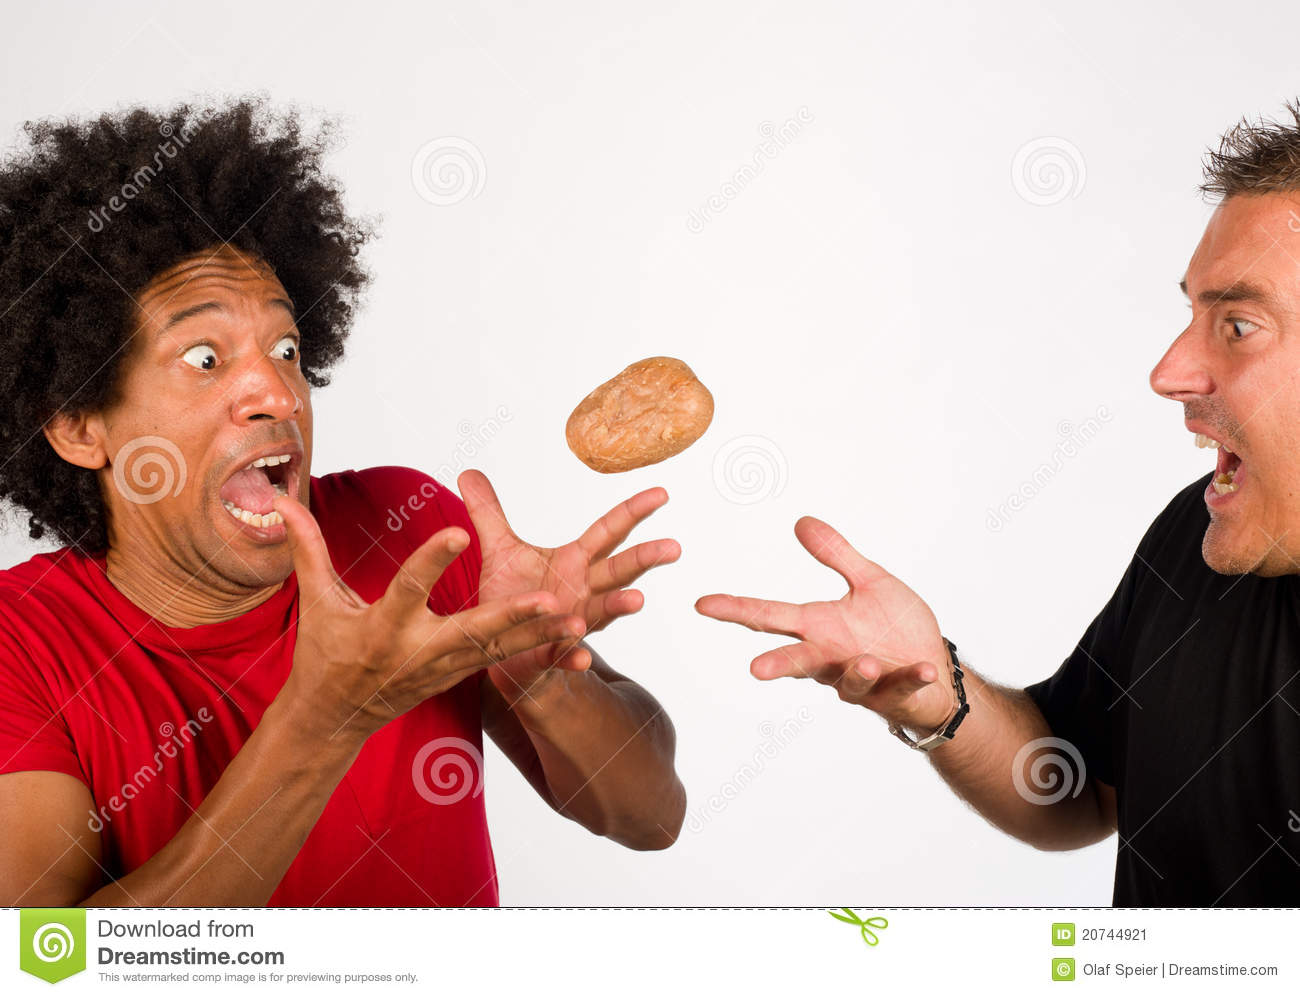 Hot Potato Stock Image - Image: 20744921